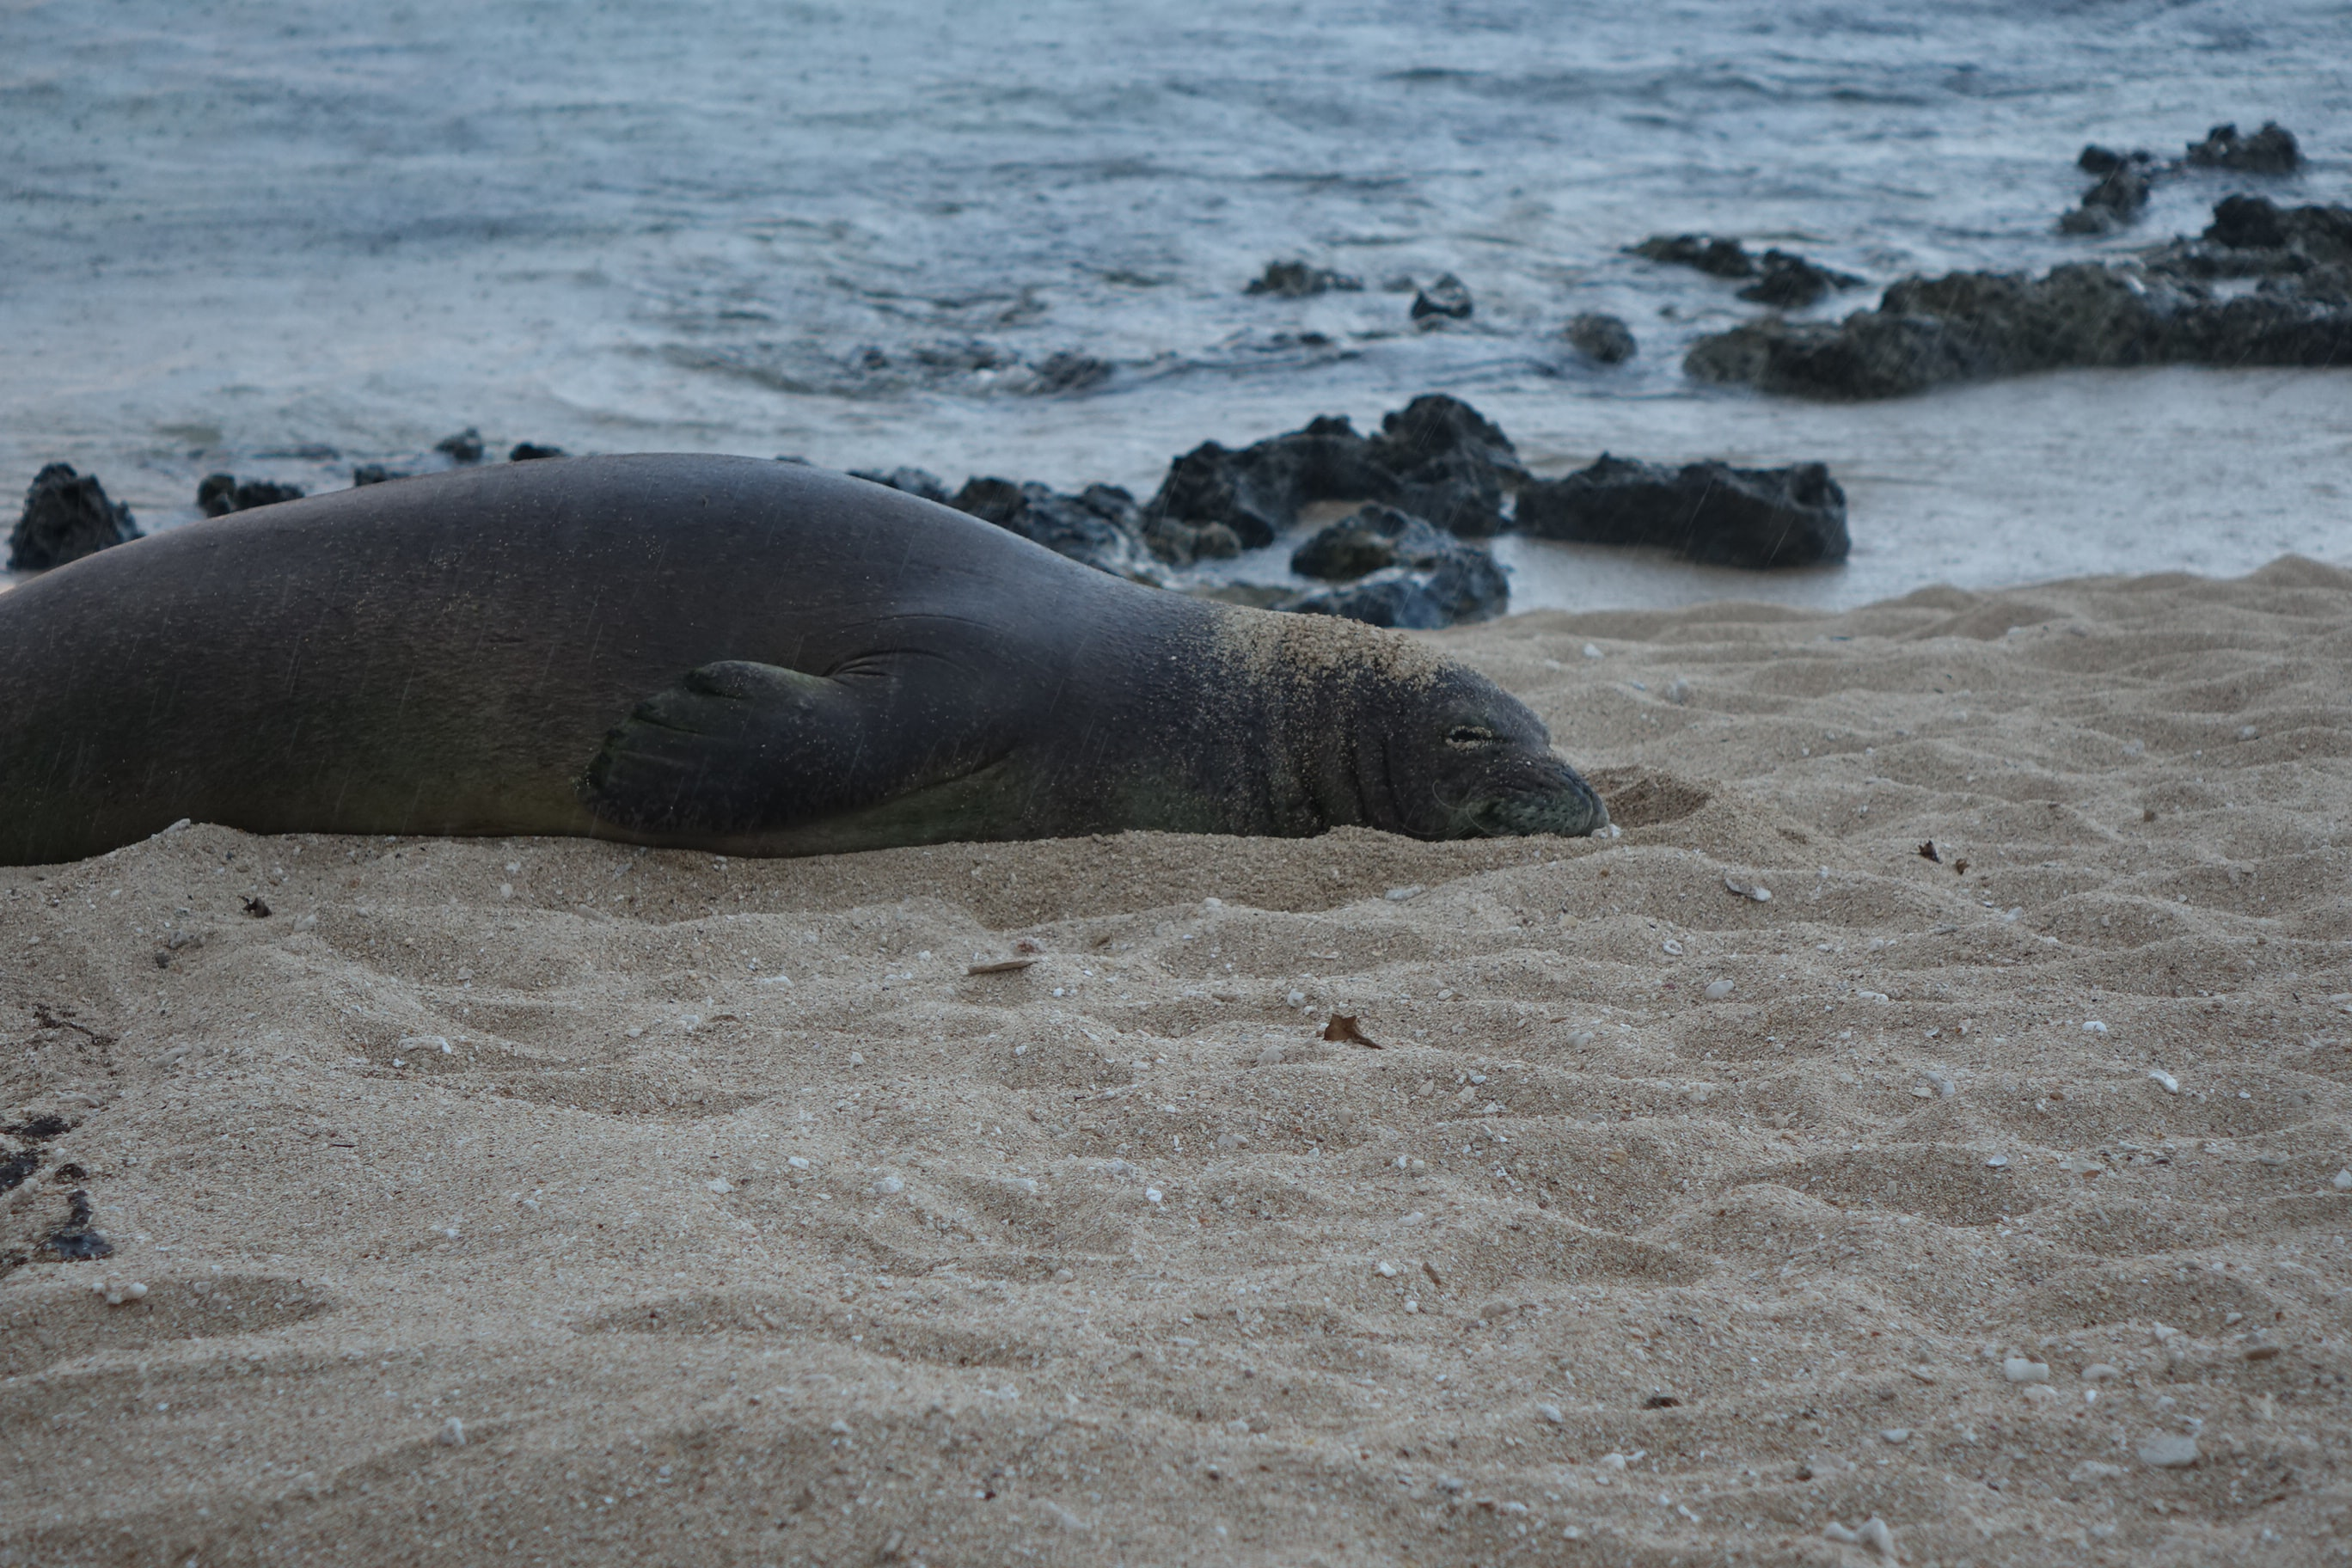 gray sea lion on brown sand near body of water